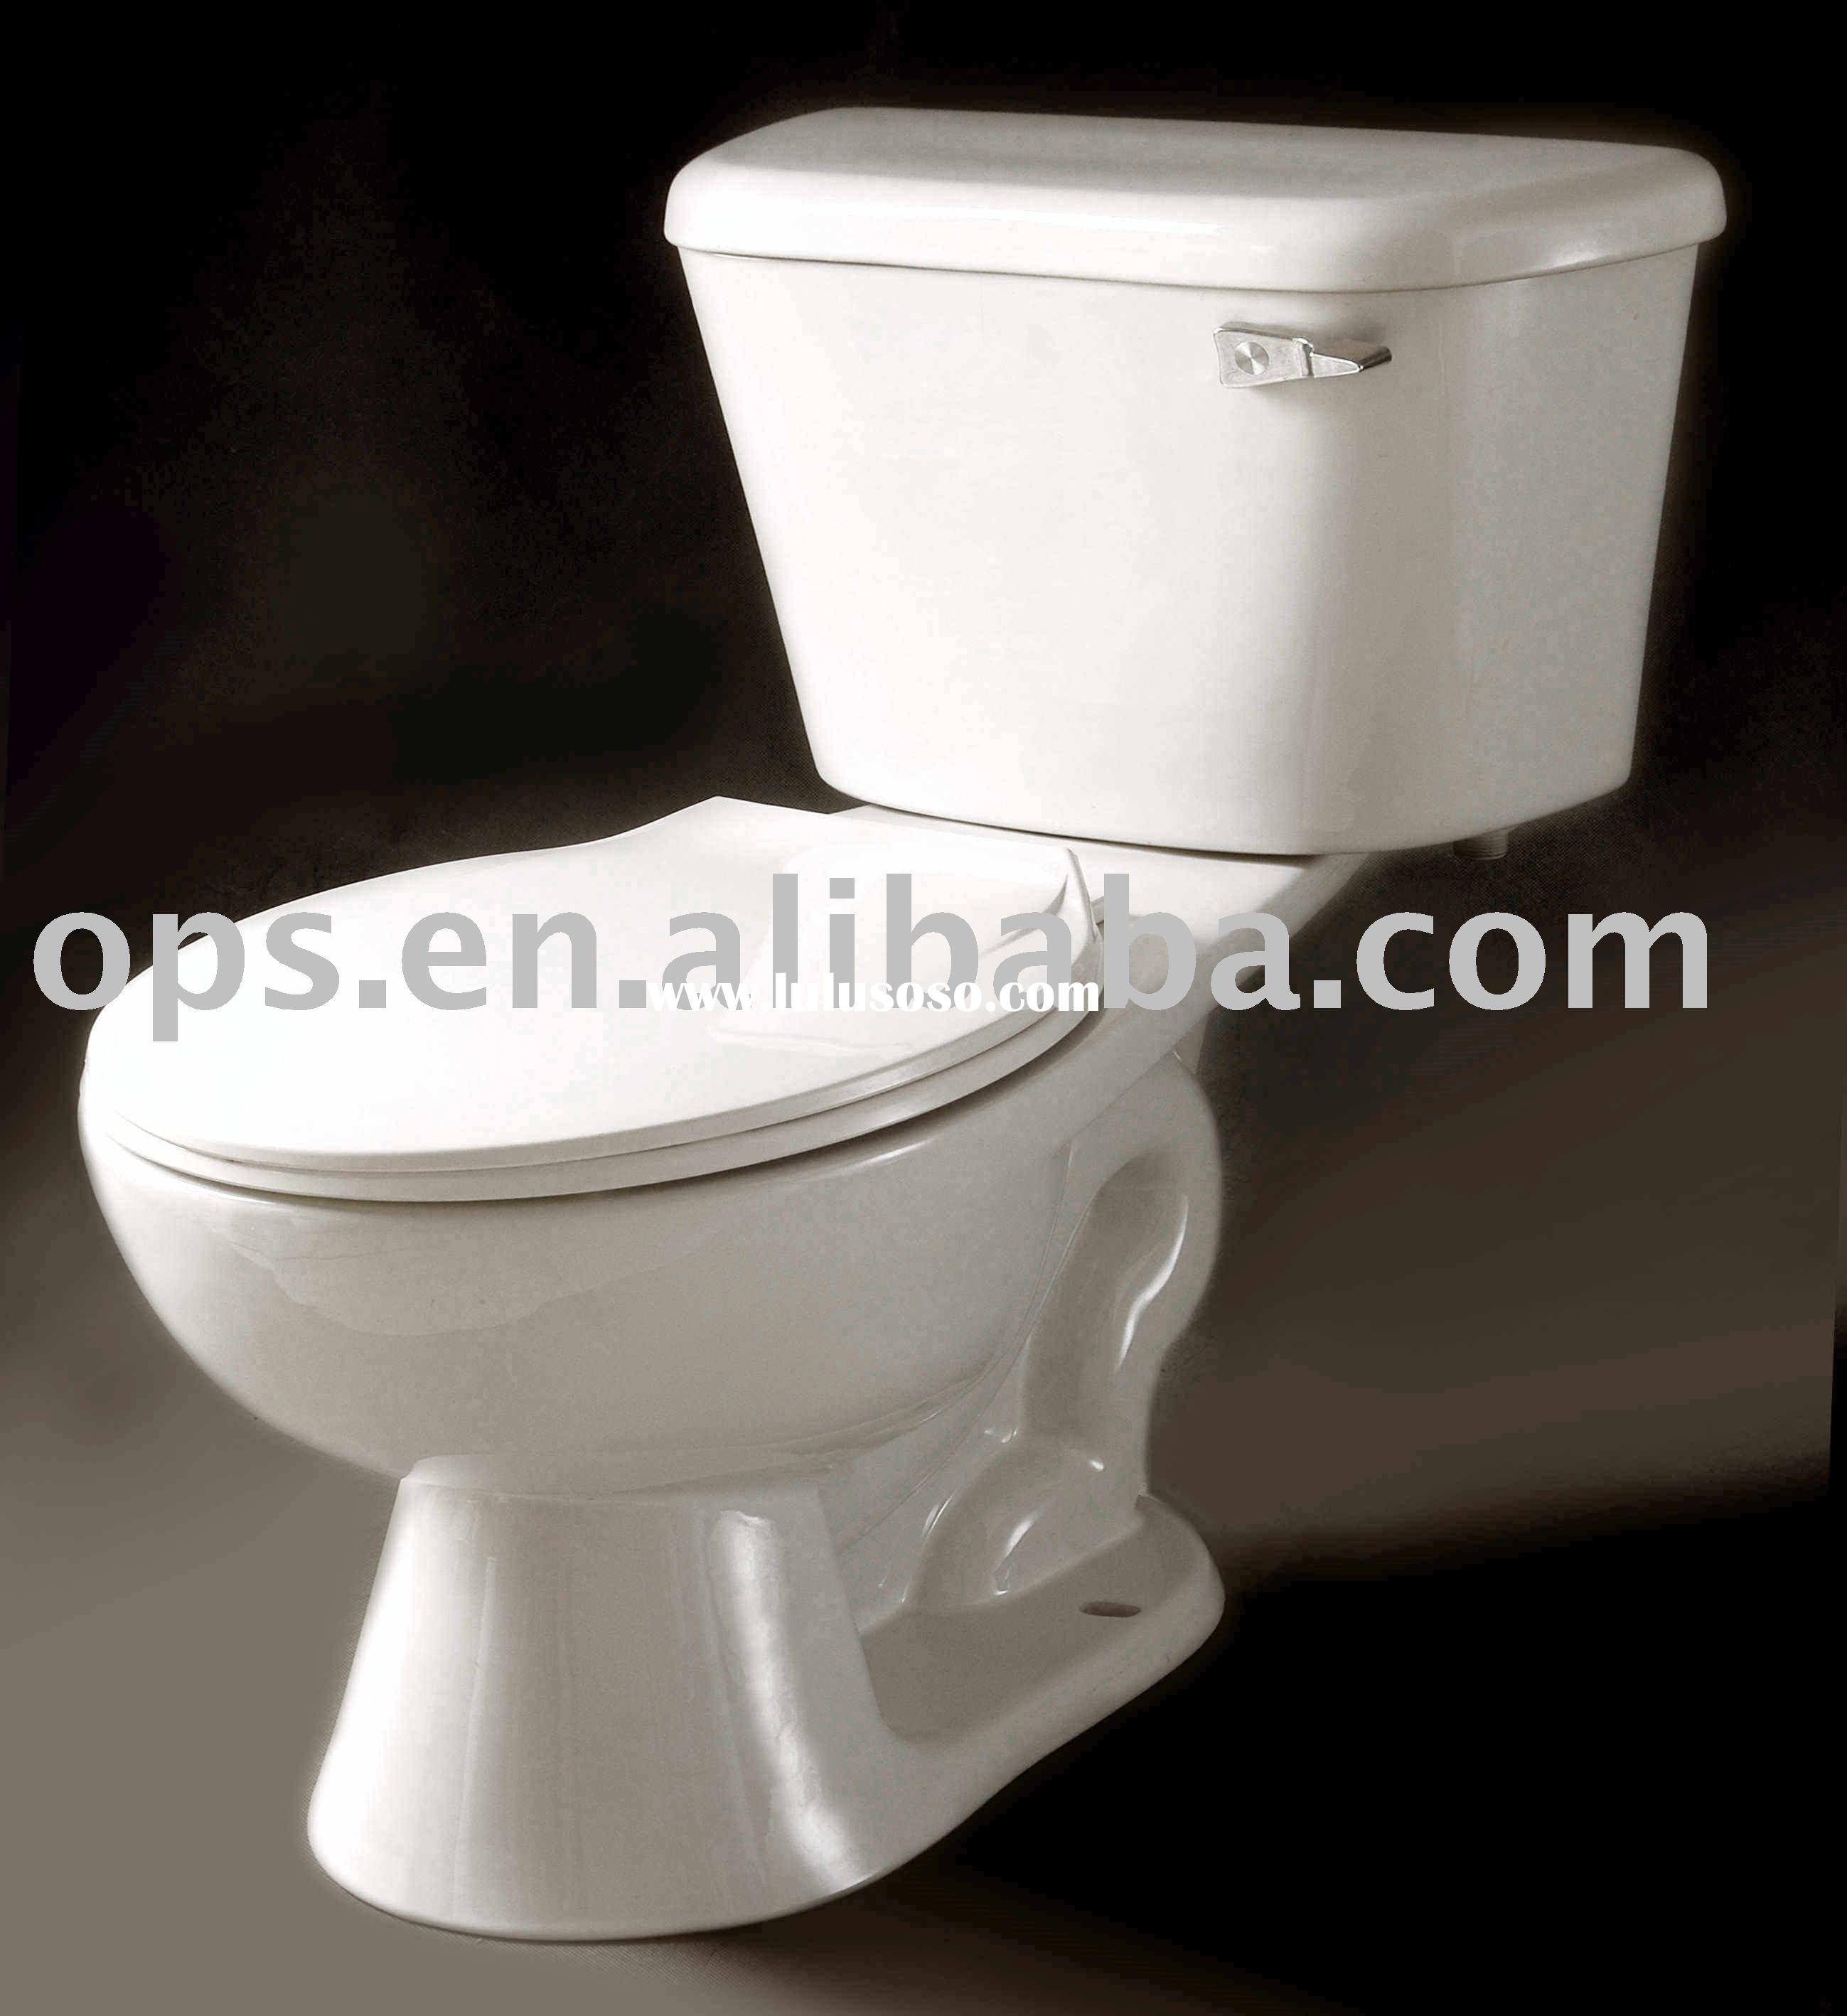 Toto Sanitary Wares In Singapore